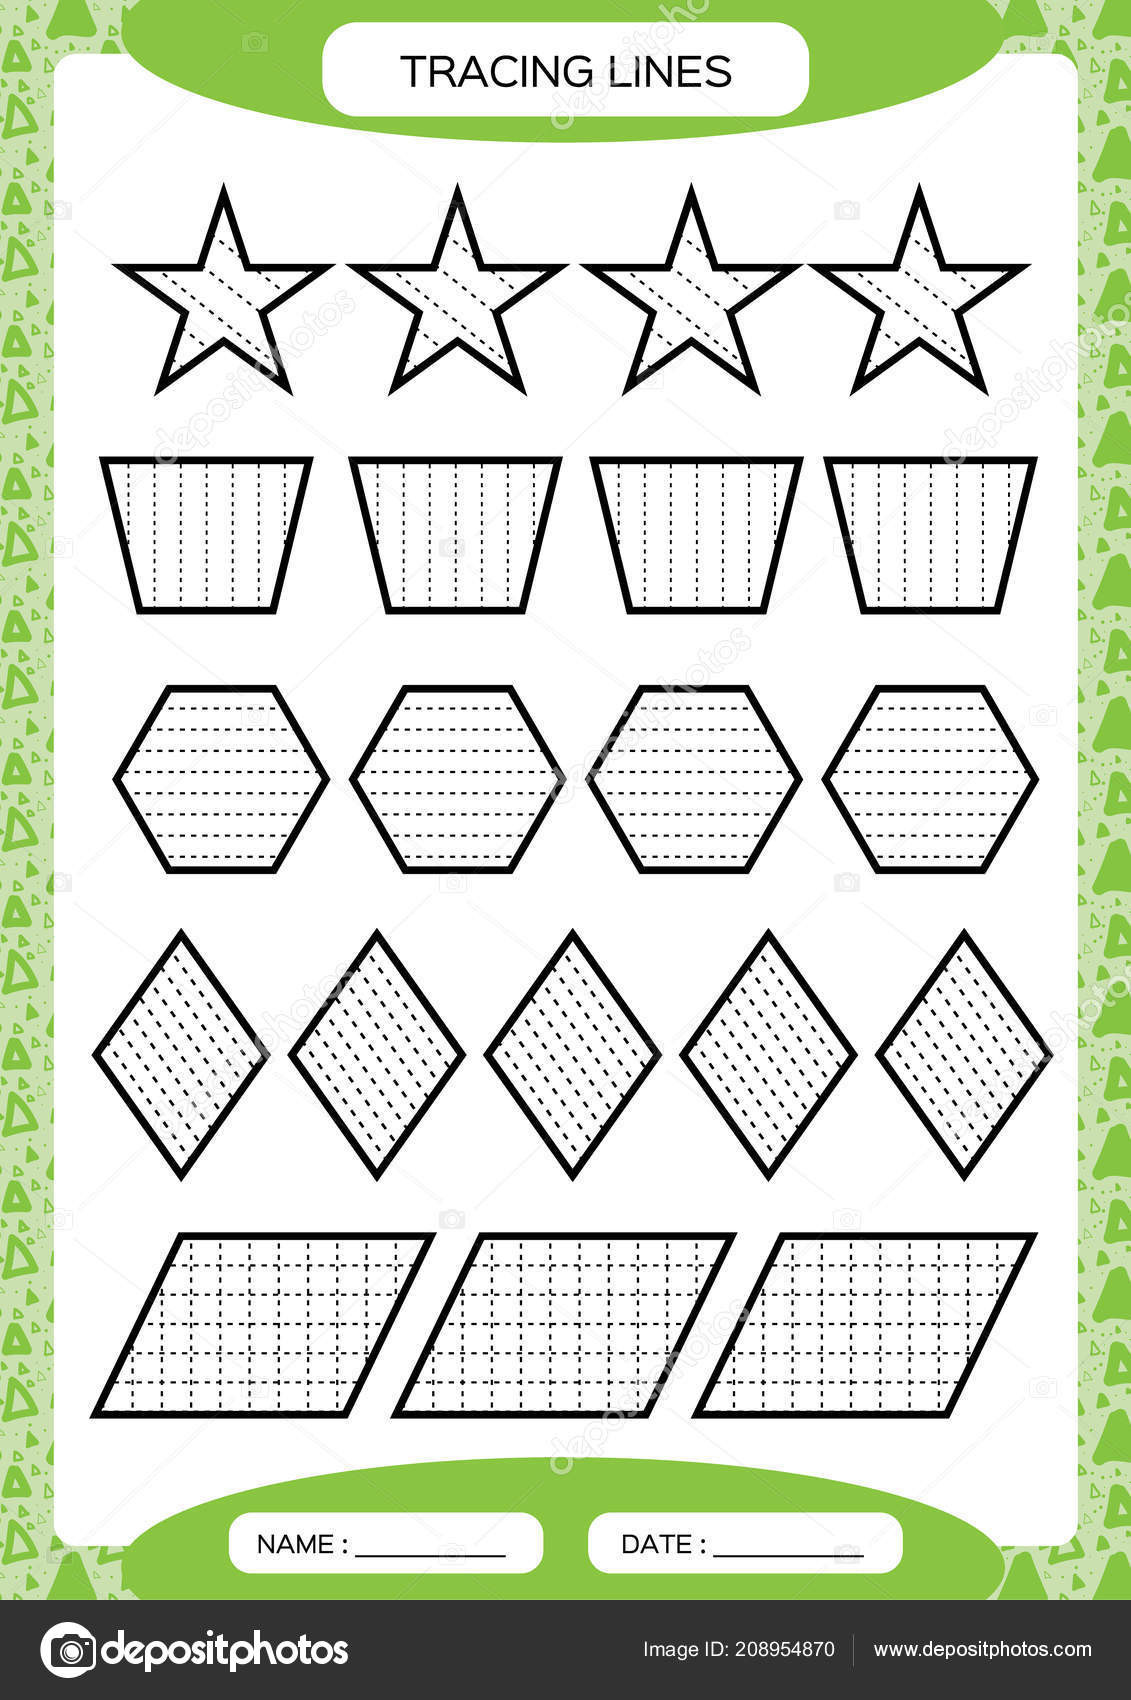 Fine Motor Skills Worksheets Tracing Lines Kids Education Preschool Worksheet Basic Writing Kids Doing Worksheets Fine Motor Skills Waves and Zigzag Lines Green Background